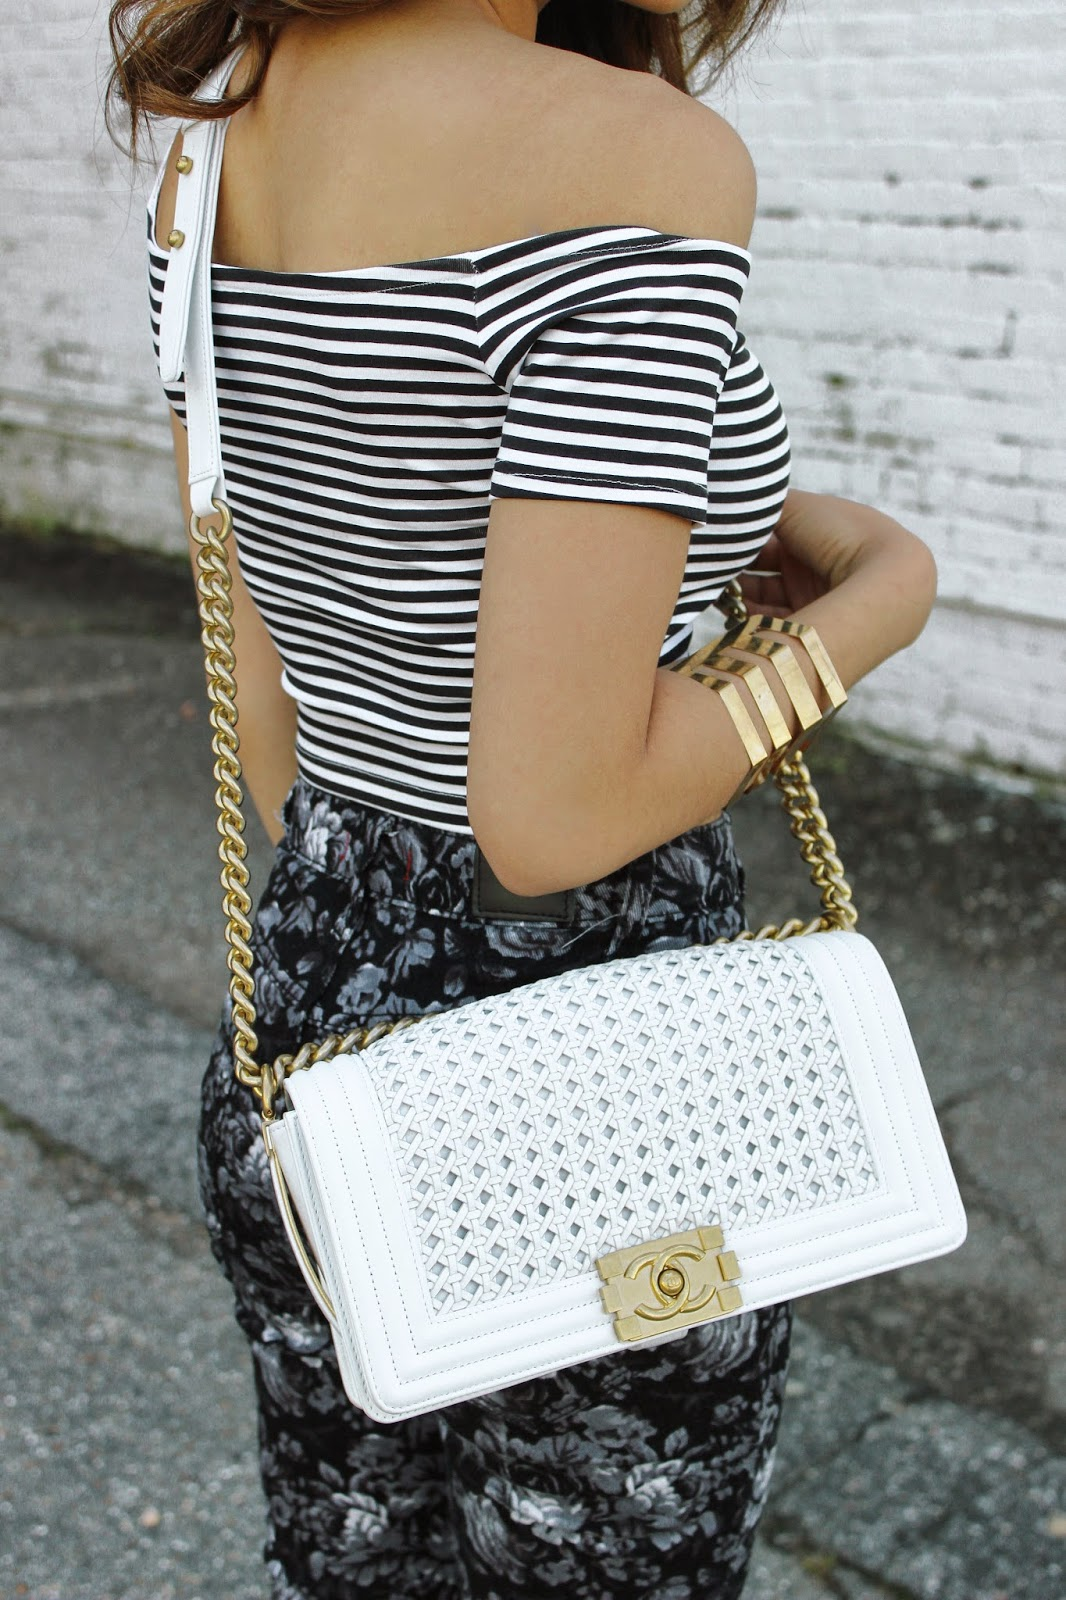 chanel boy bag, highwaisted jeans, crop tops, fashion blogger, melba nguyen, steve madden, vietnamese, white chanel boy bag